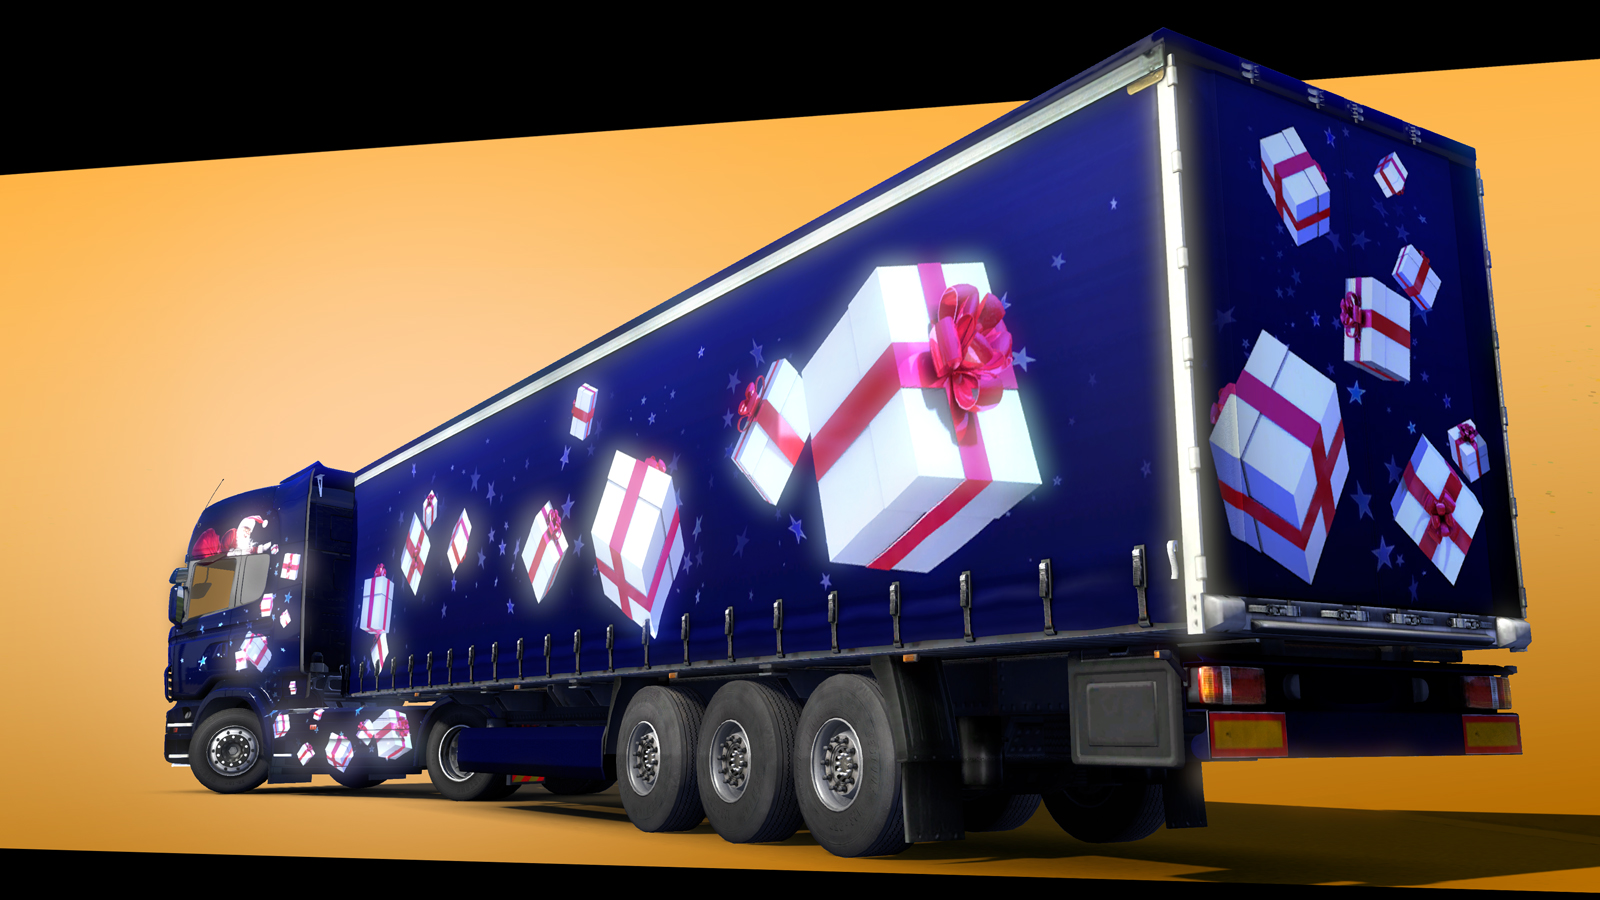 ets2_xmas_cargo_gifts_a_005.jpg